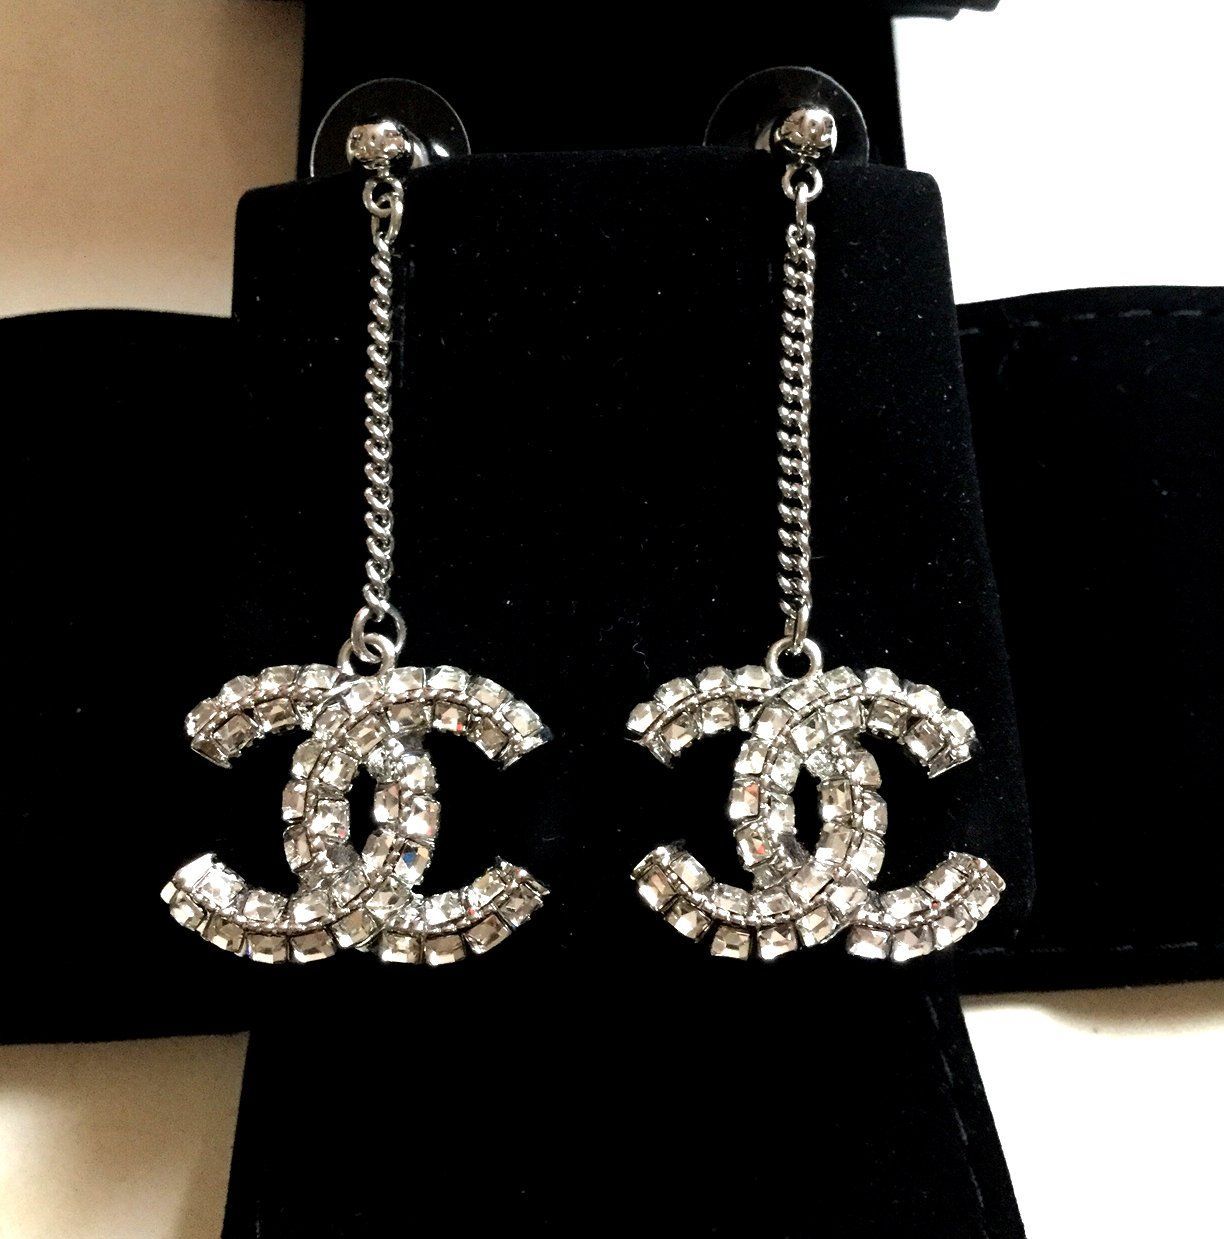 0c025bfdf67 CHANEL+Crystal+BAGUETTE+Drop+Dangle+Earrings+SILVER+Chain+Double-Sided+CC+ NIB